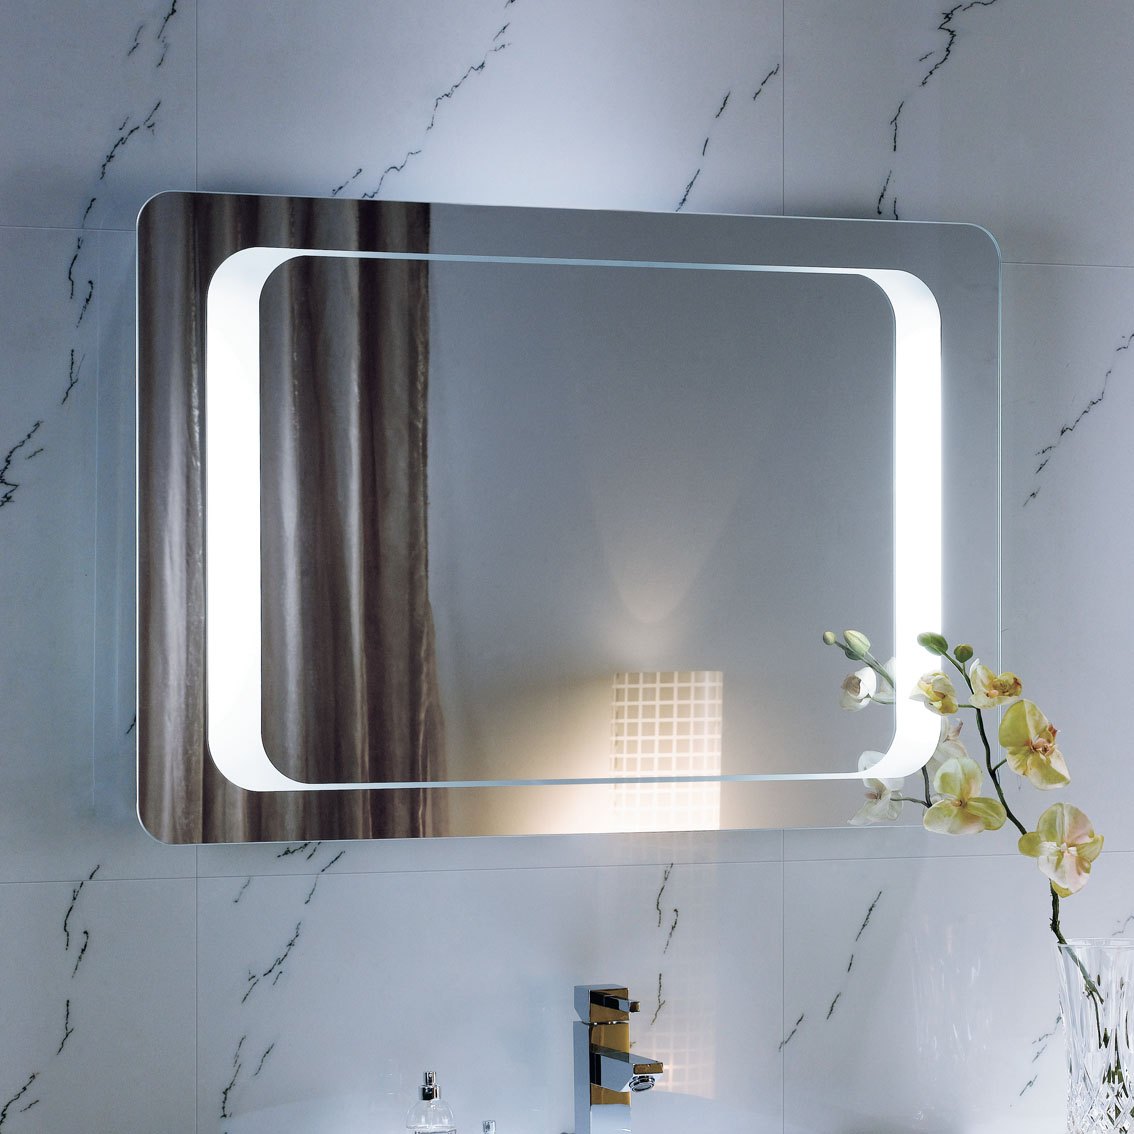 600 x 900 backlit bathroom mirror wall mounted demister